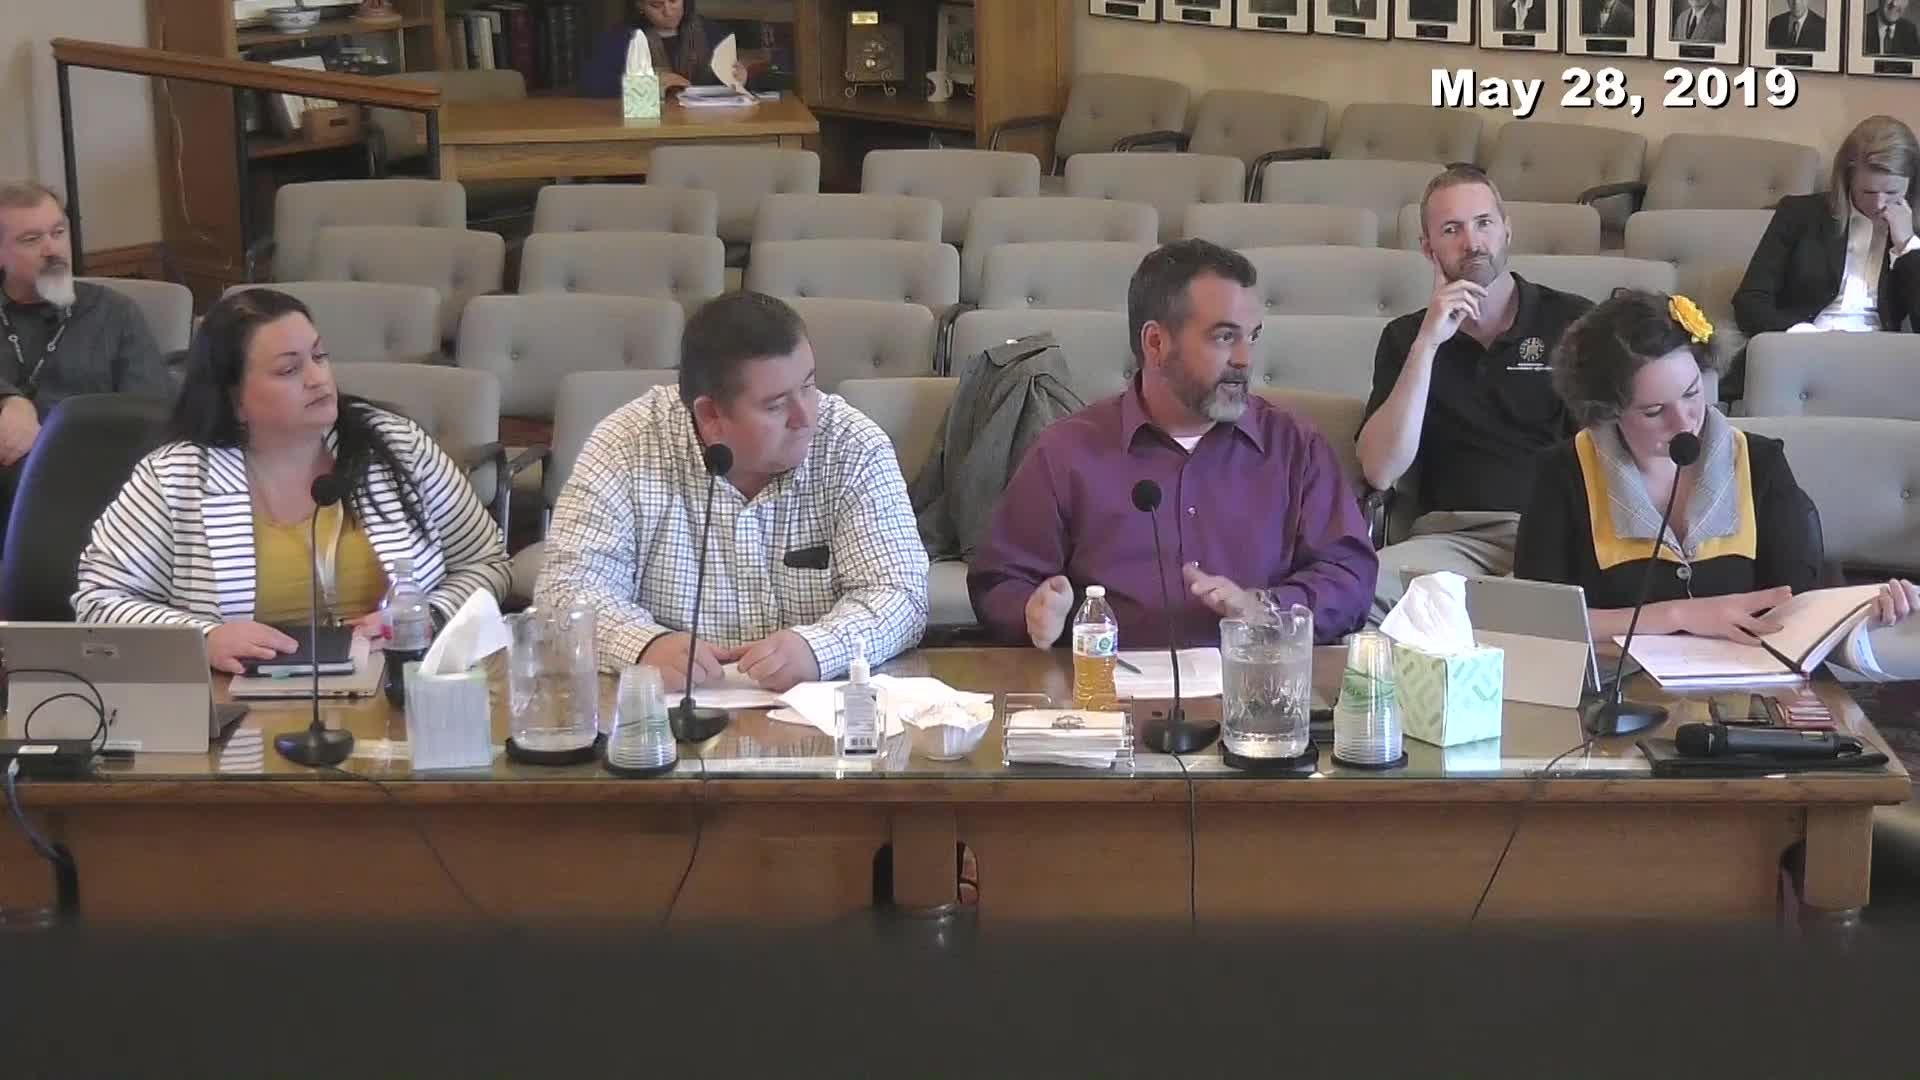 City Council Work Session - 05/28/2019